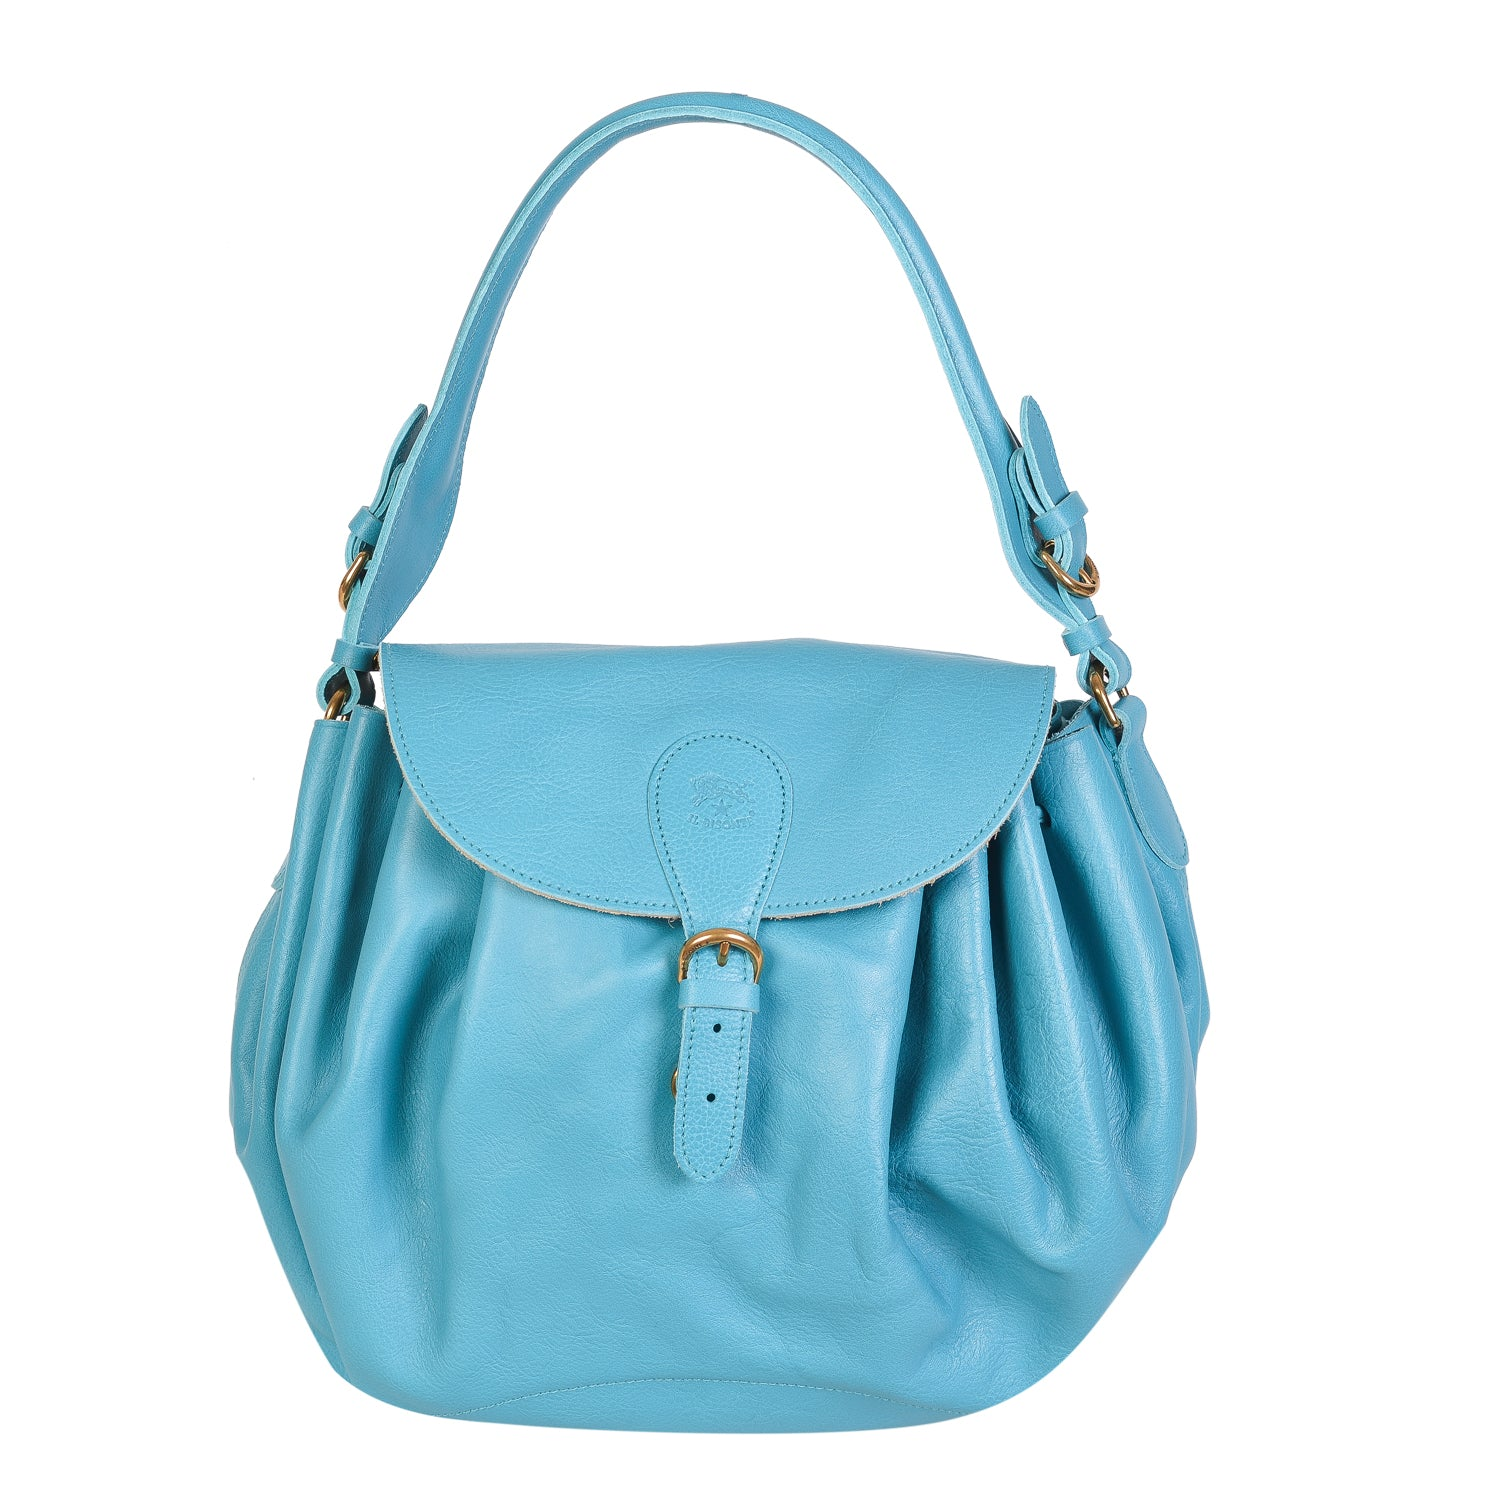 NEW IL BISONTE WOMAN'S CURLY COLLECTION SHOULDER BAG IN TURQUOISE LEATHER